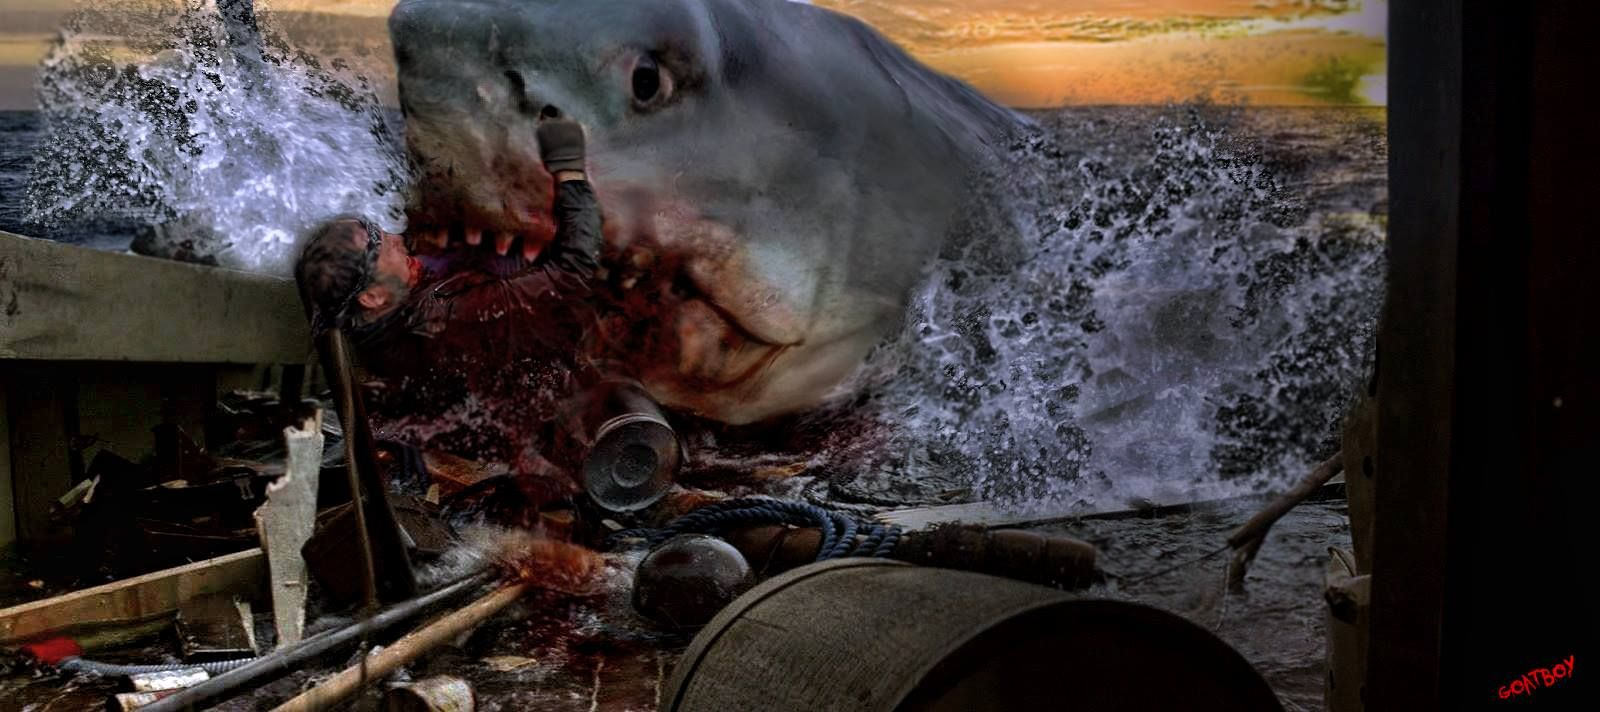 is jaws a horror movie Everything you could ever want from a horror movie is found in jaws, driven by  such incredible storytelling, character work and acting that it's so.